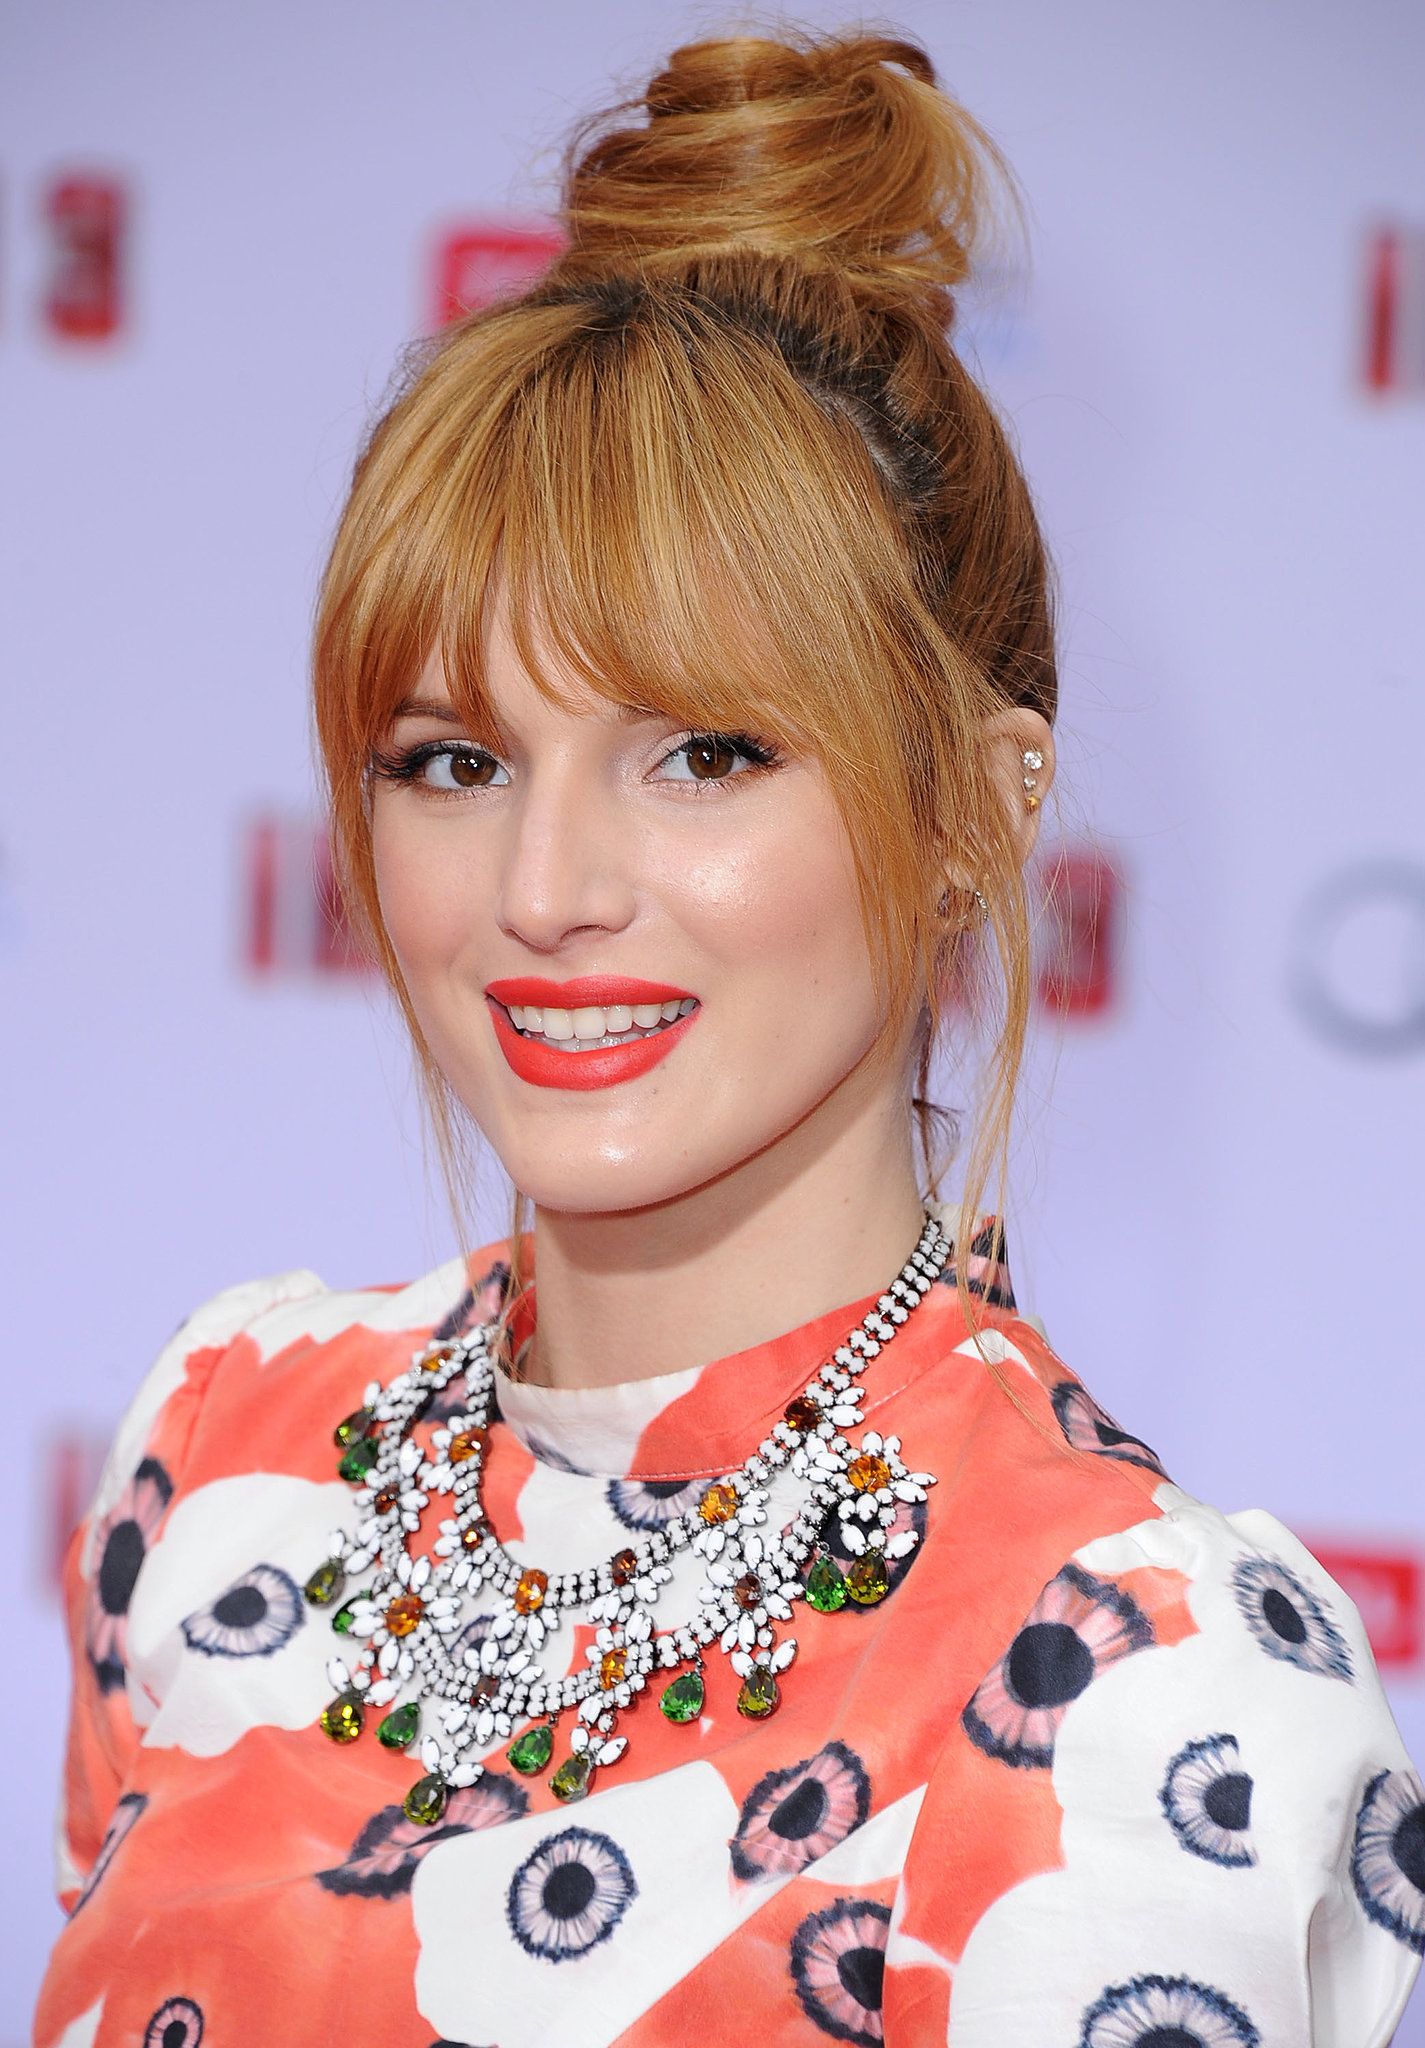 A fiery orange lip hue, just like Bella Thorne's, is the ideal complement to a twisted topknot. Both make a statement and are right on trend for Summer 2013.